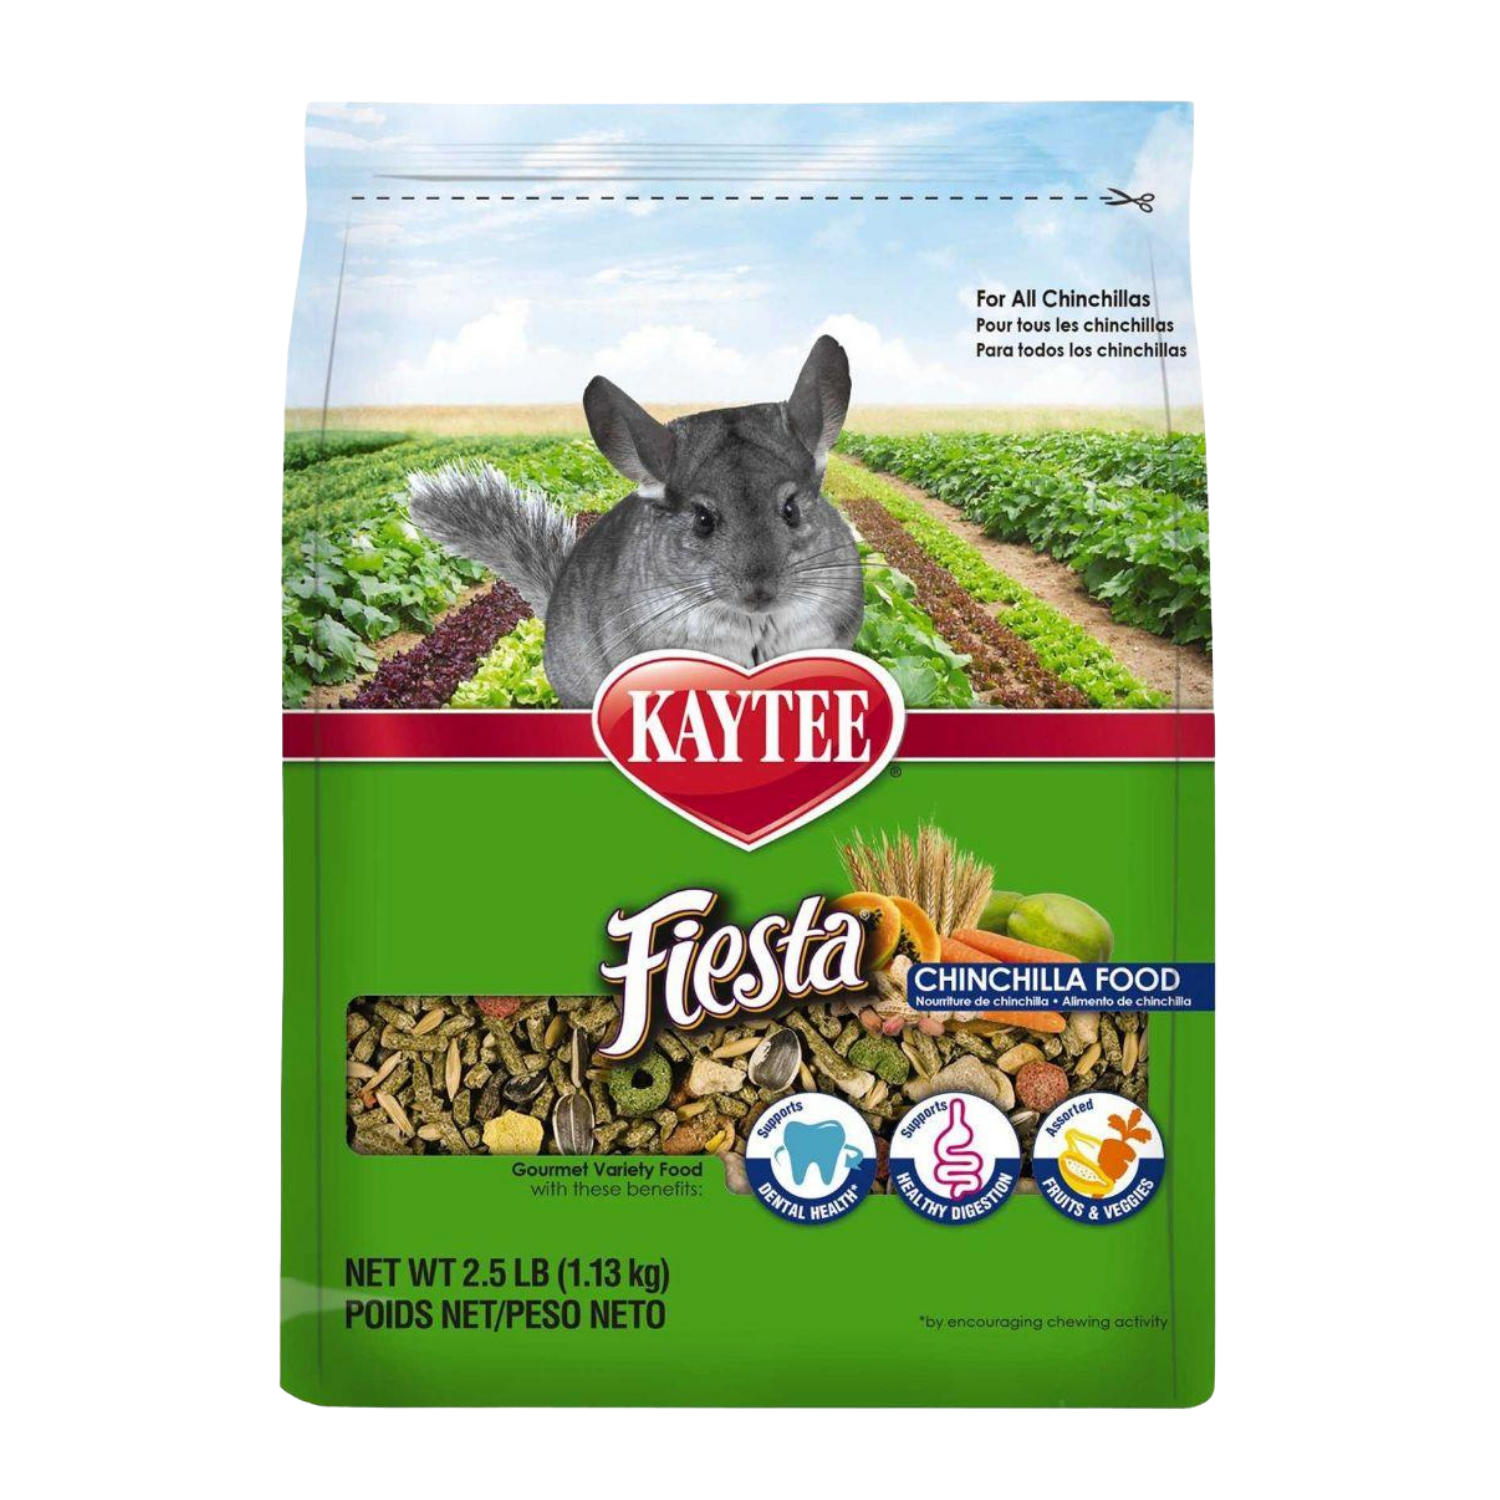 [DISCONTINUED] Kaytee Fiesta Max for Chinchilla - 1.13kg